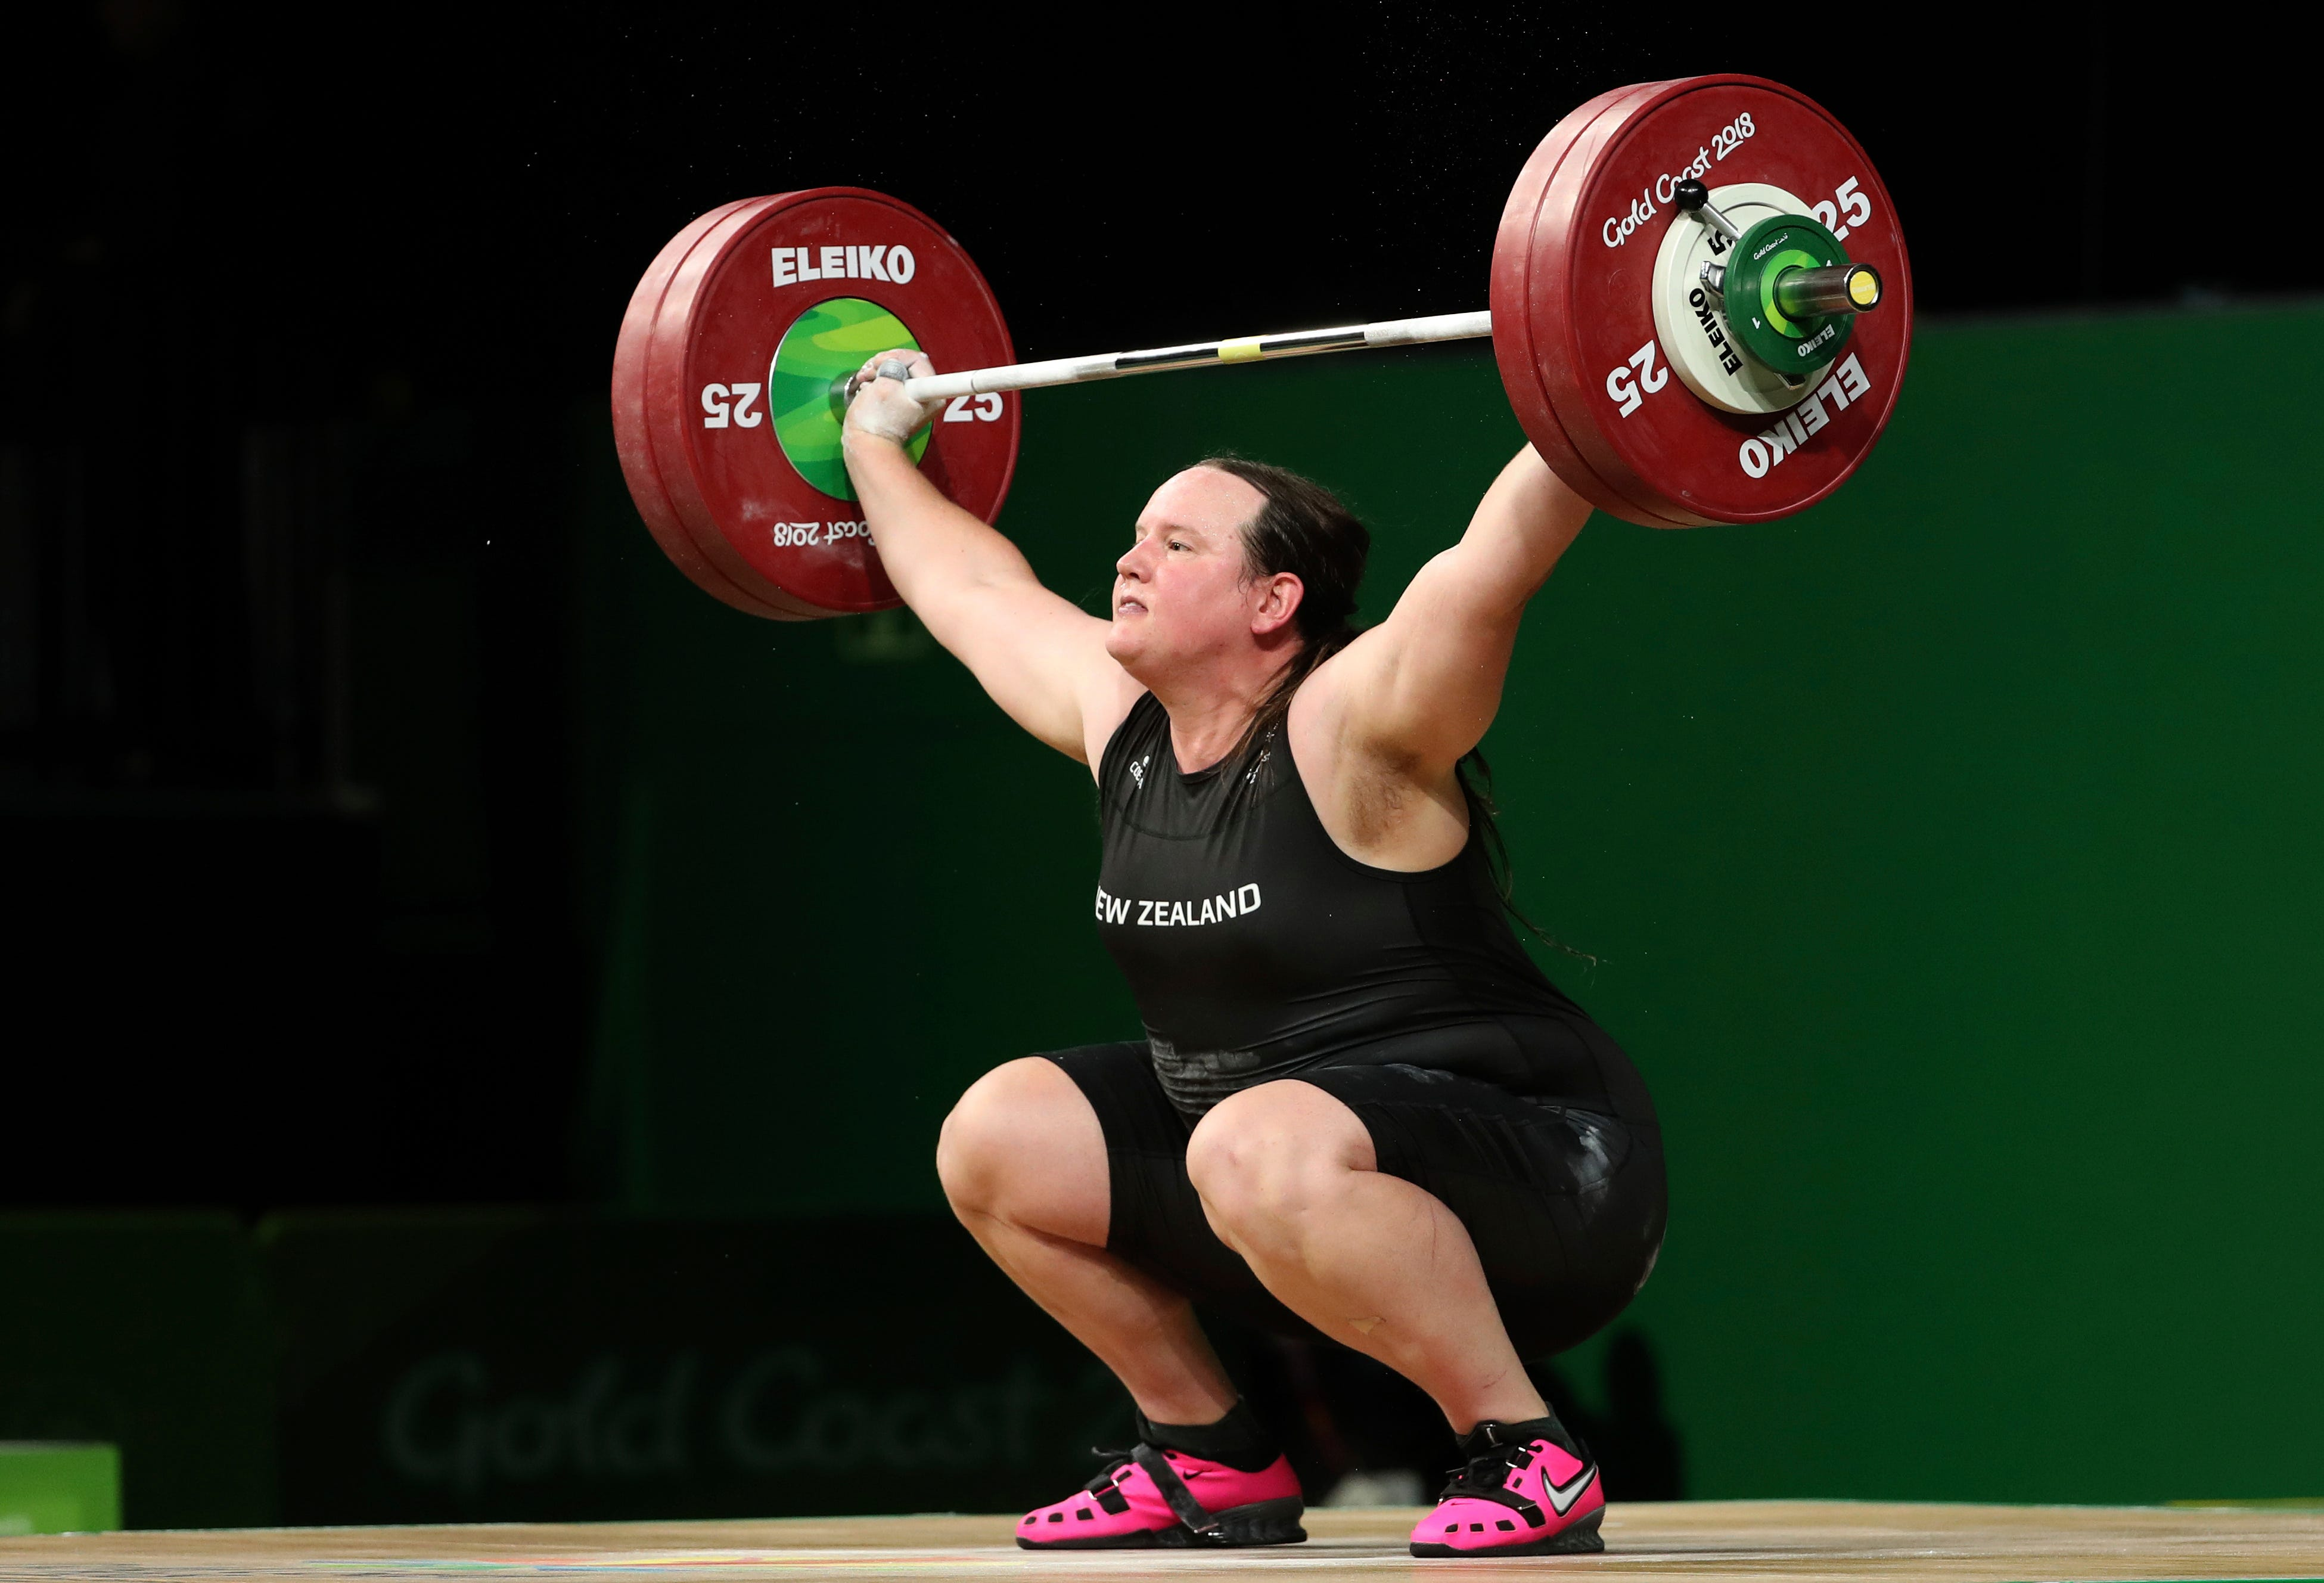 Weightlifter Laurel Hubbard becomes first transgender athlete to qualify for Olympics